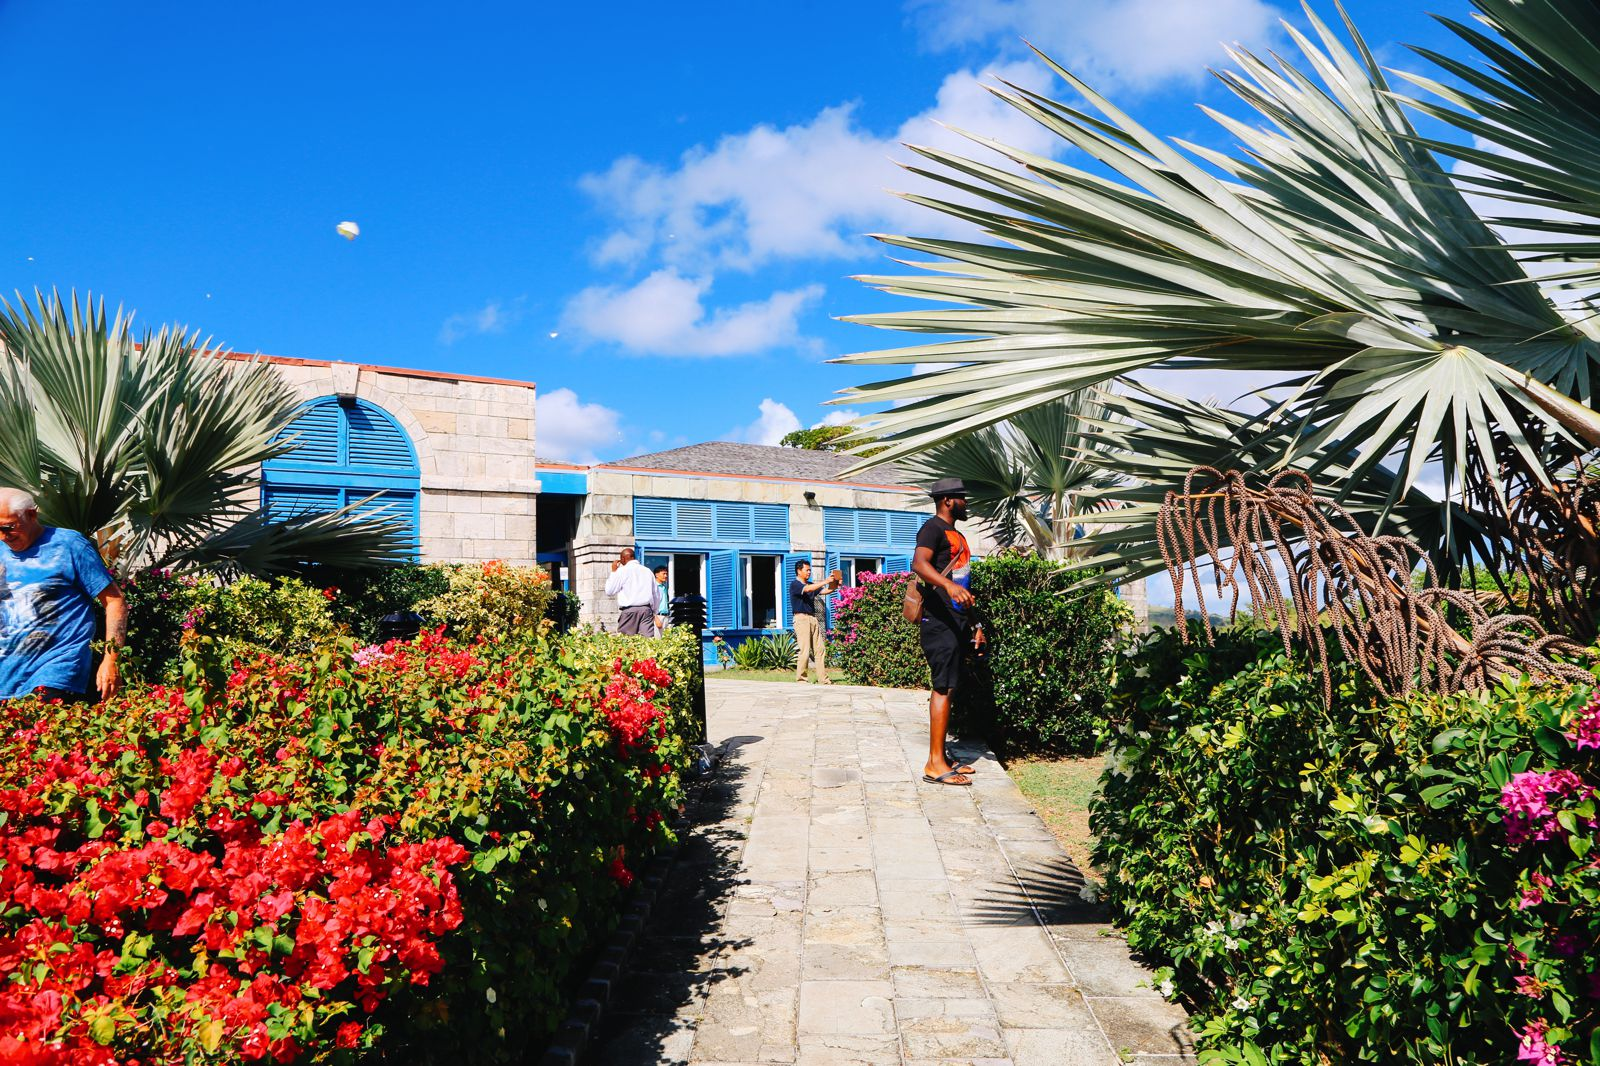 Exploring The Caribbean Island Of Antigua By Land - Part 1 (25)